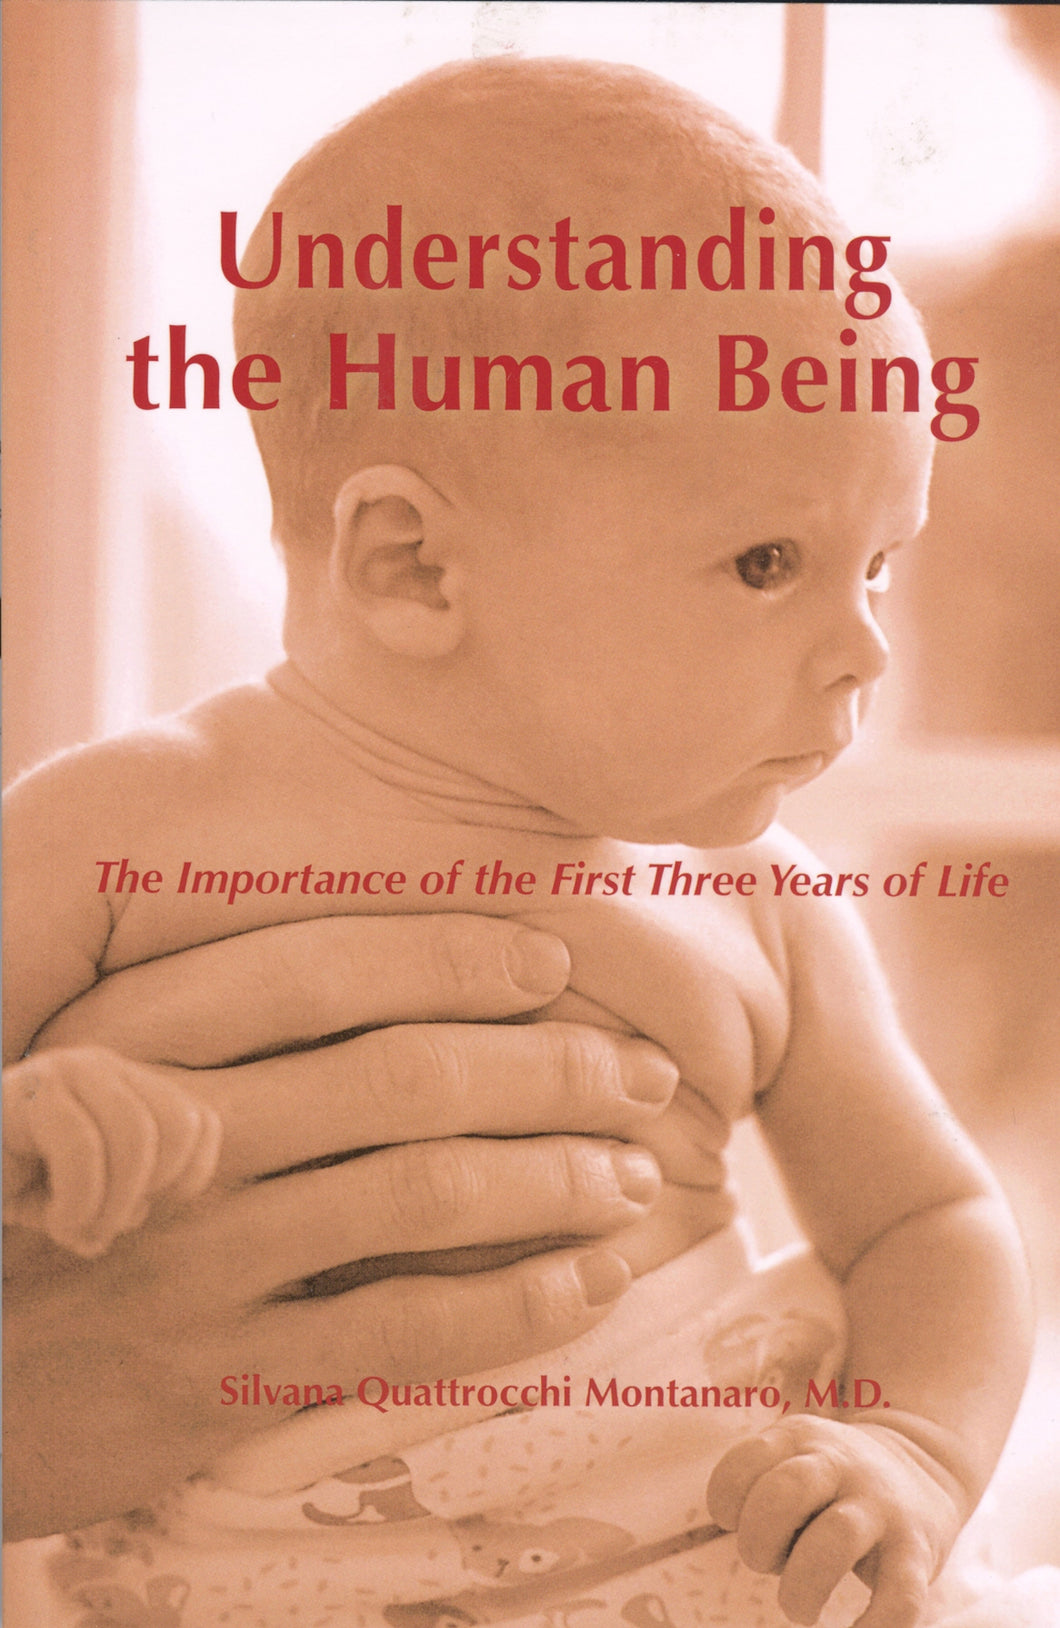 Understanding the Human Being: The Importance of the First Three